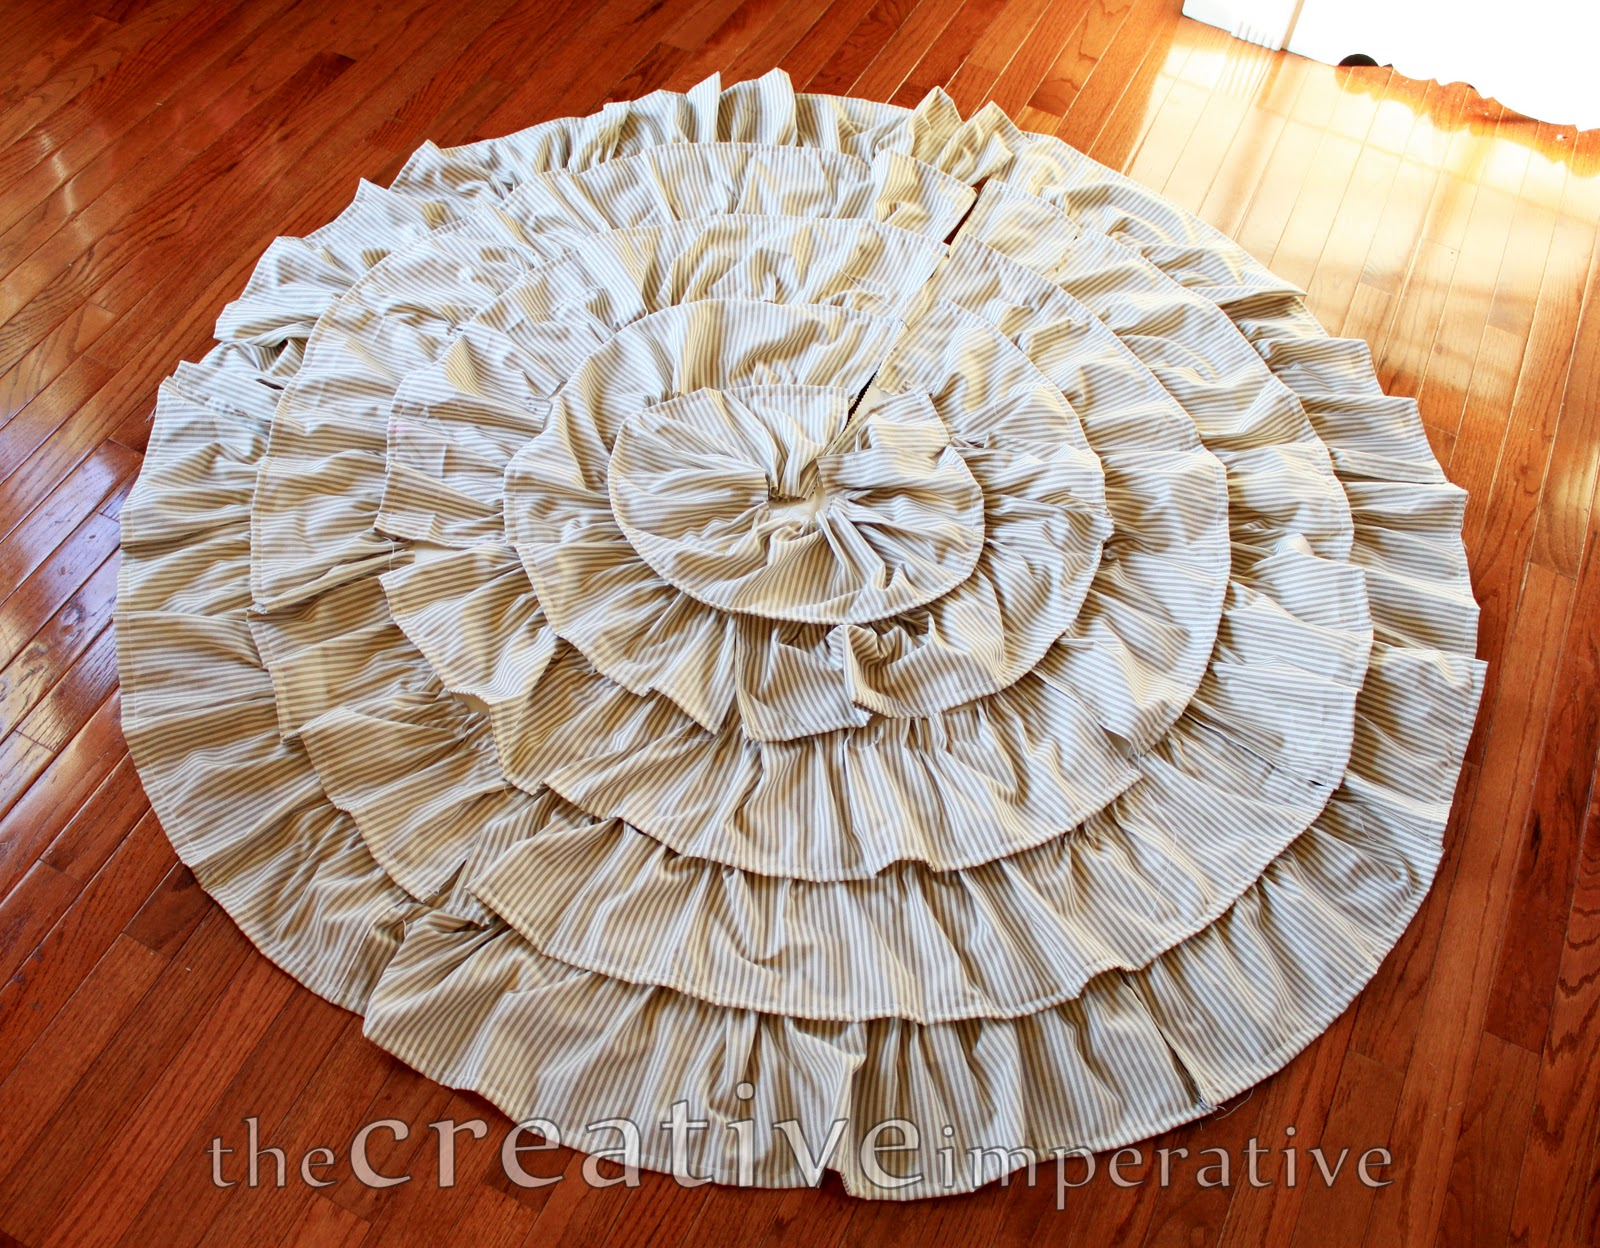 The Creative Imperative: Stripey Ruffle Christmas Tree Skirt